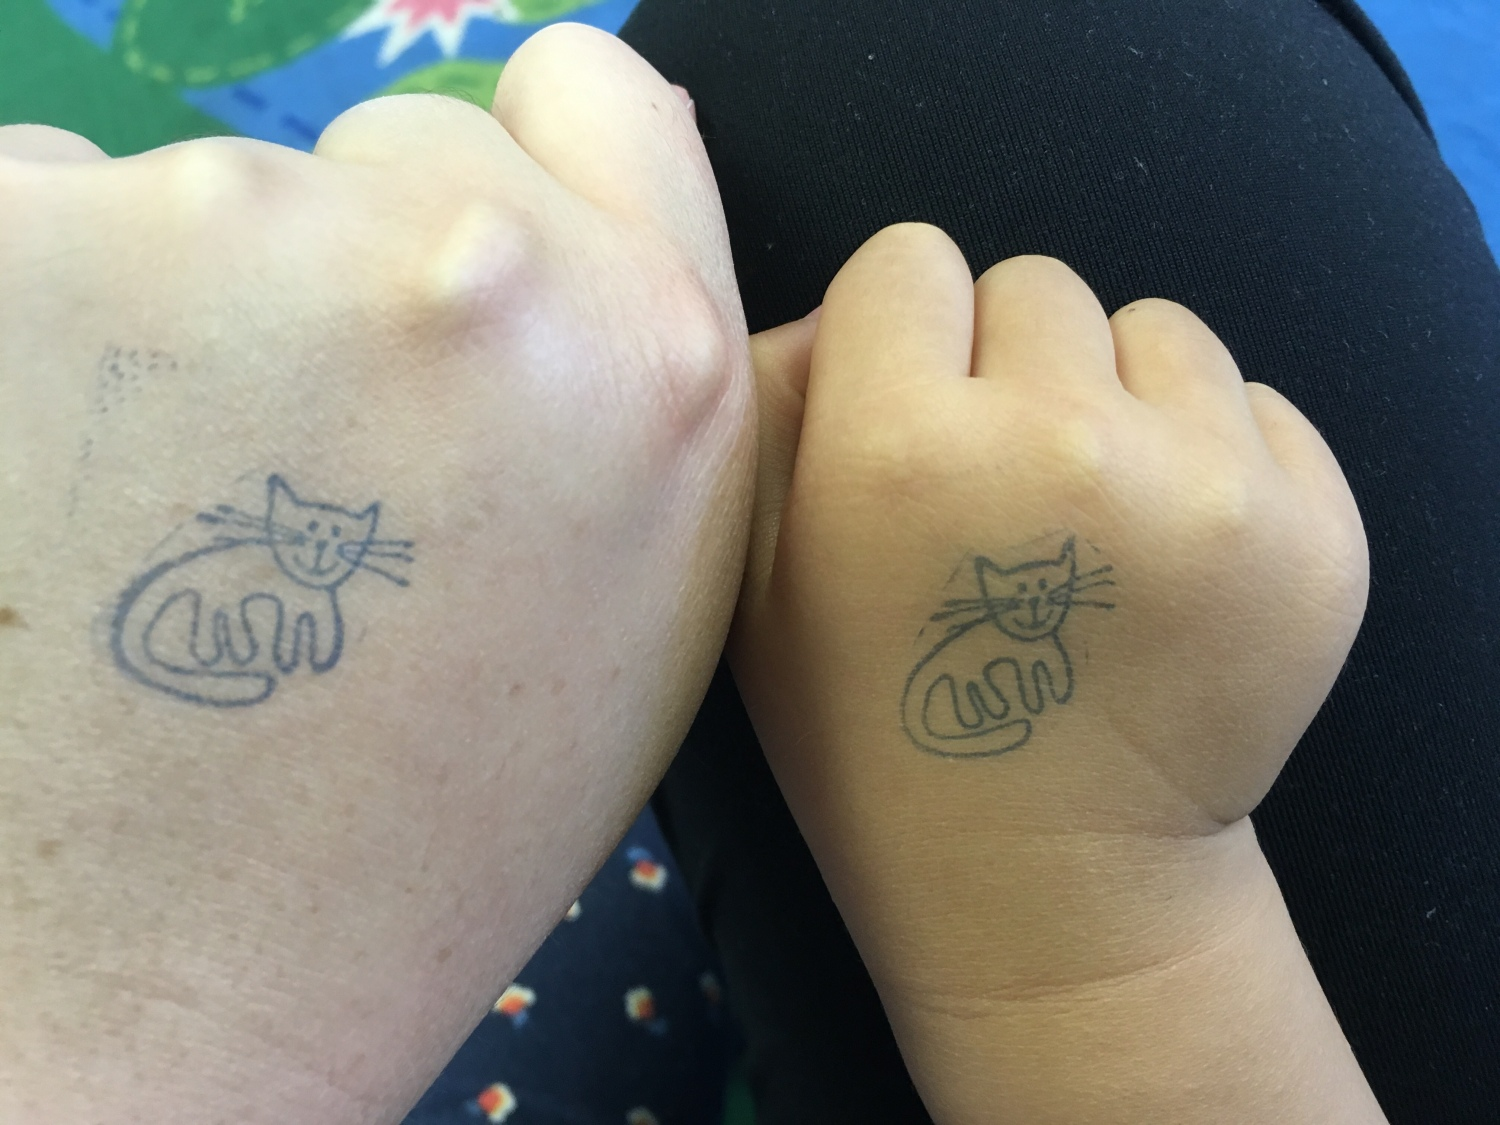 An adult and a kid's hand next to each other, both with a cat hand stamp